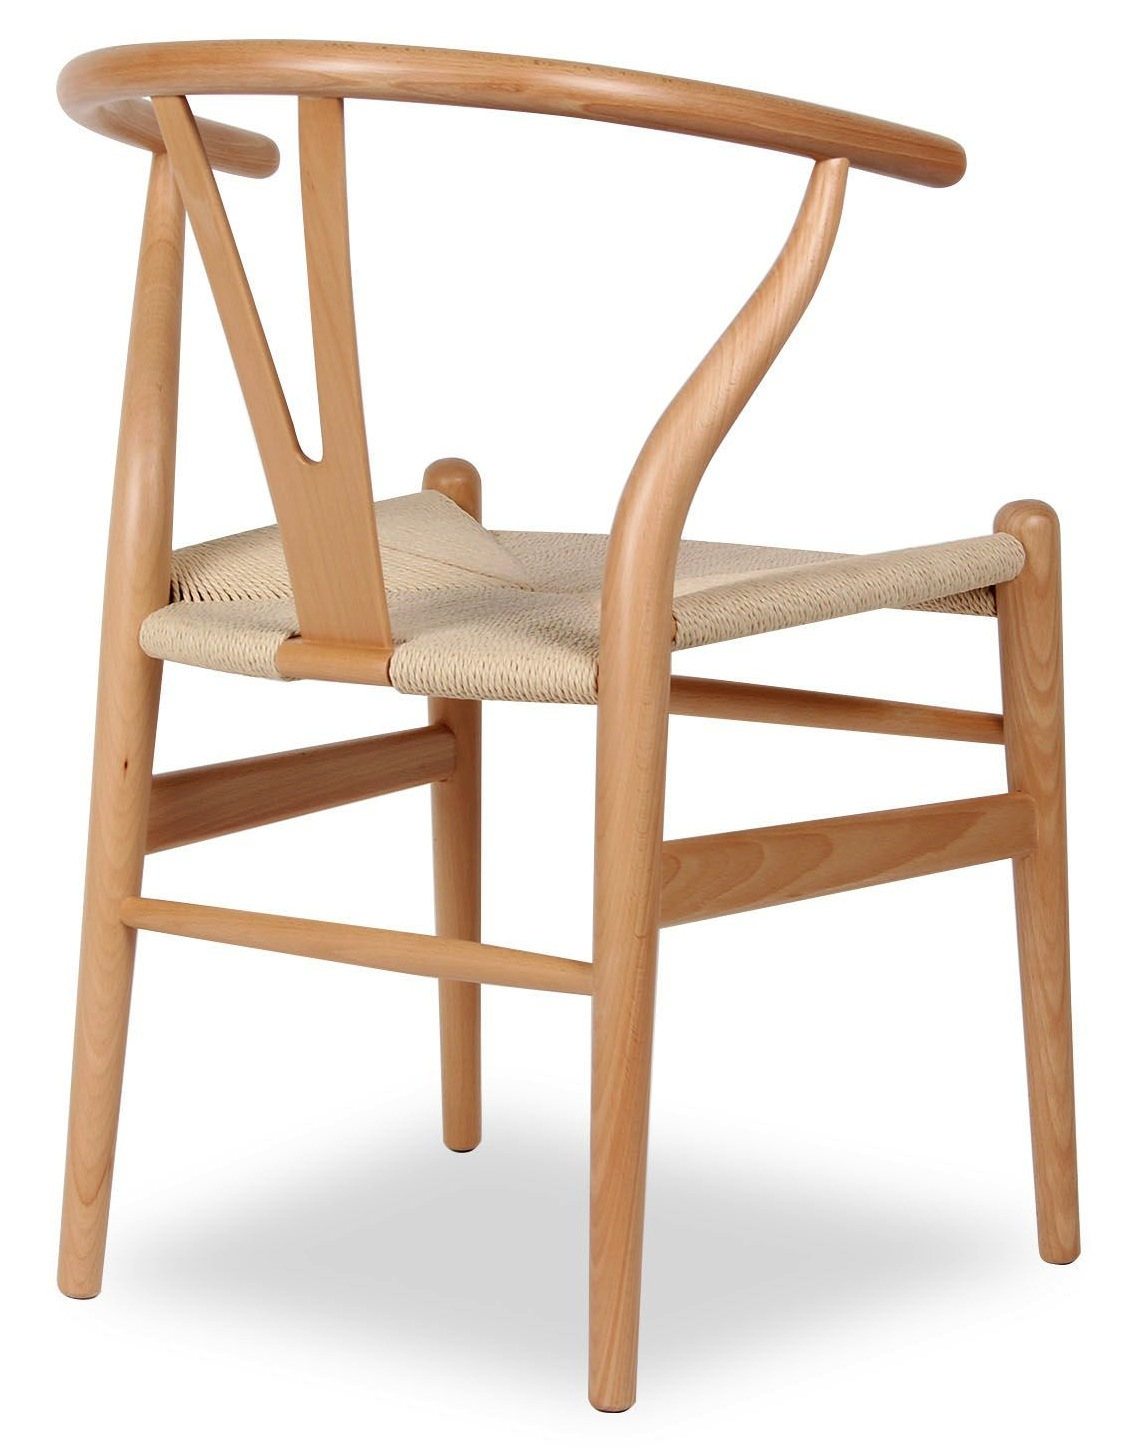 white wishbone chair replica traditional dining room chairs hans wegner style in natural wood